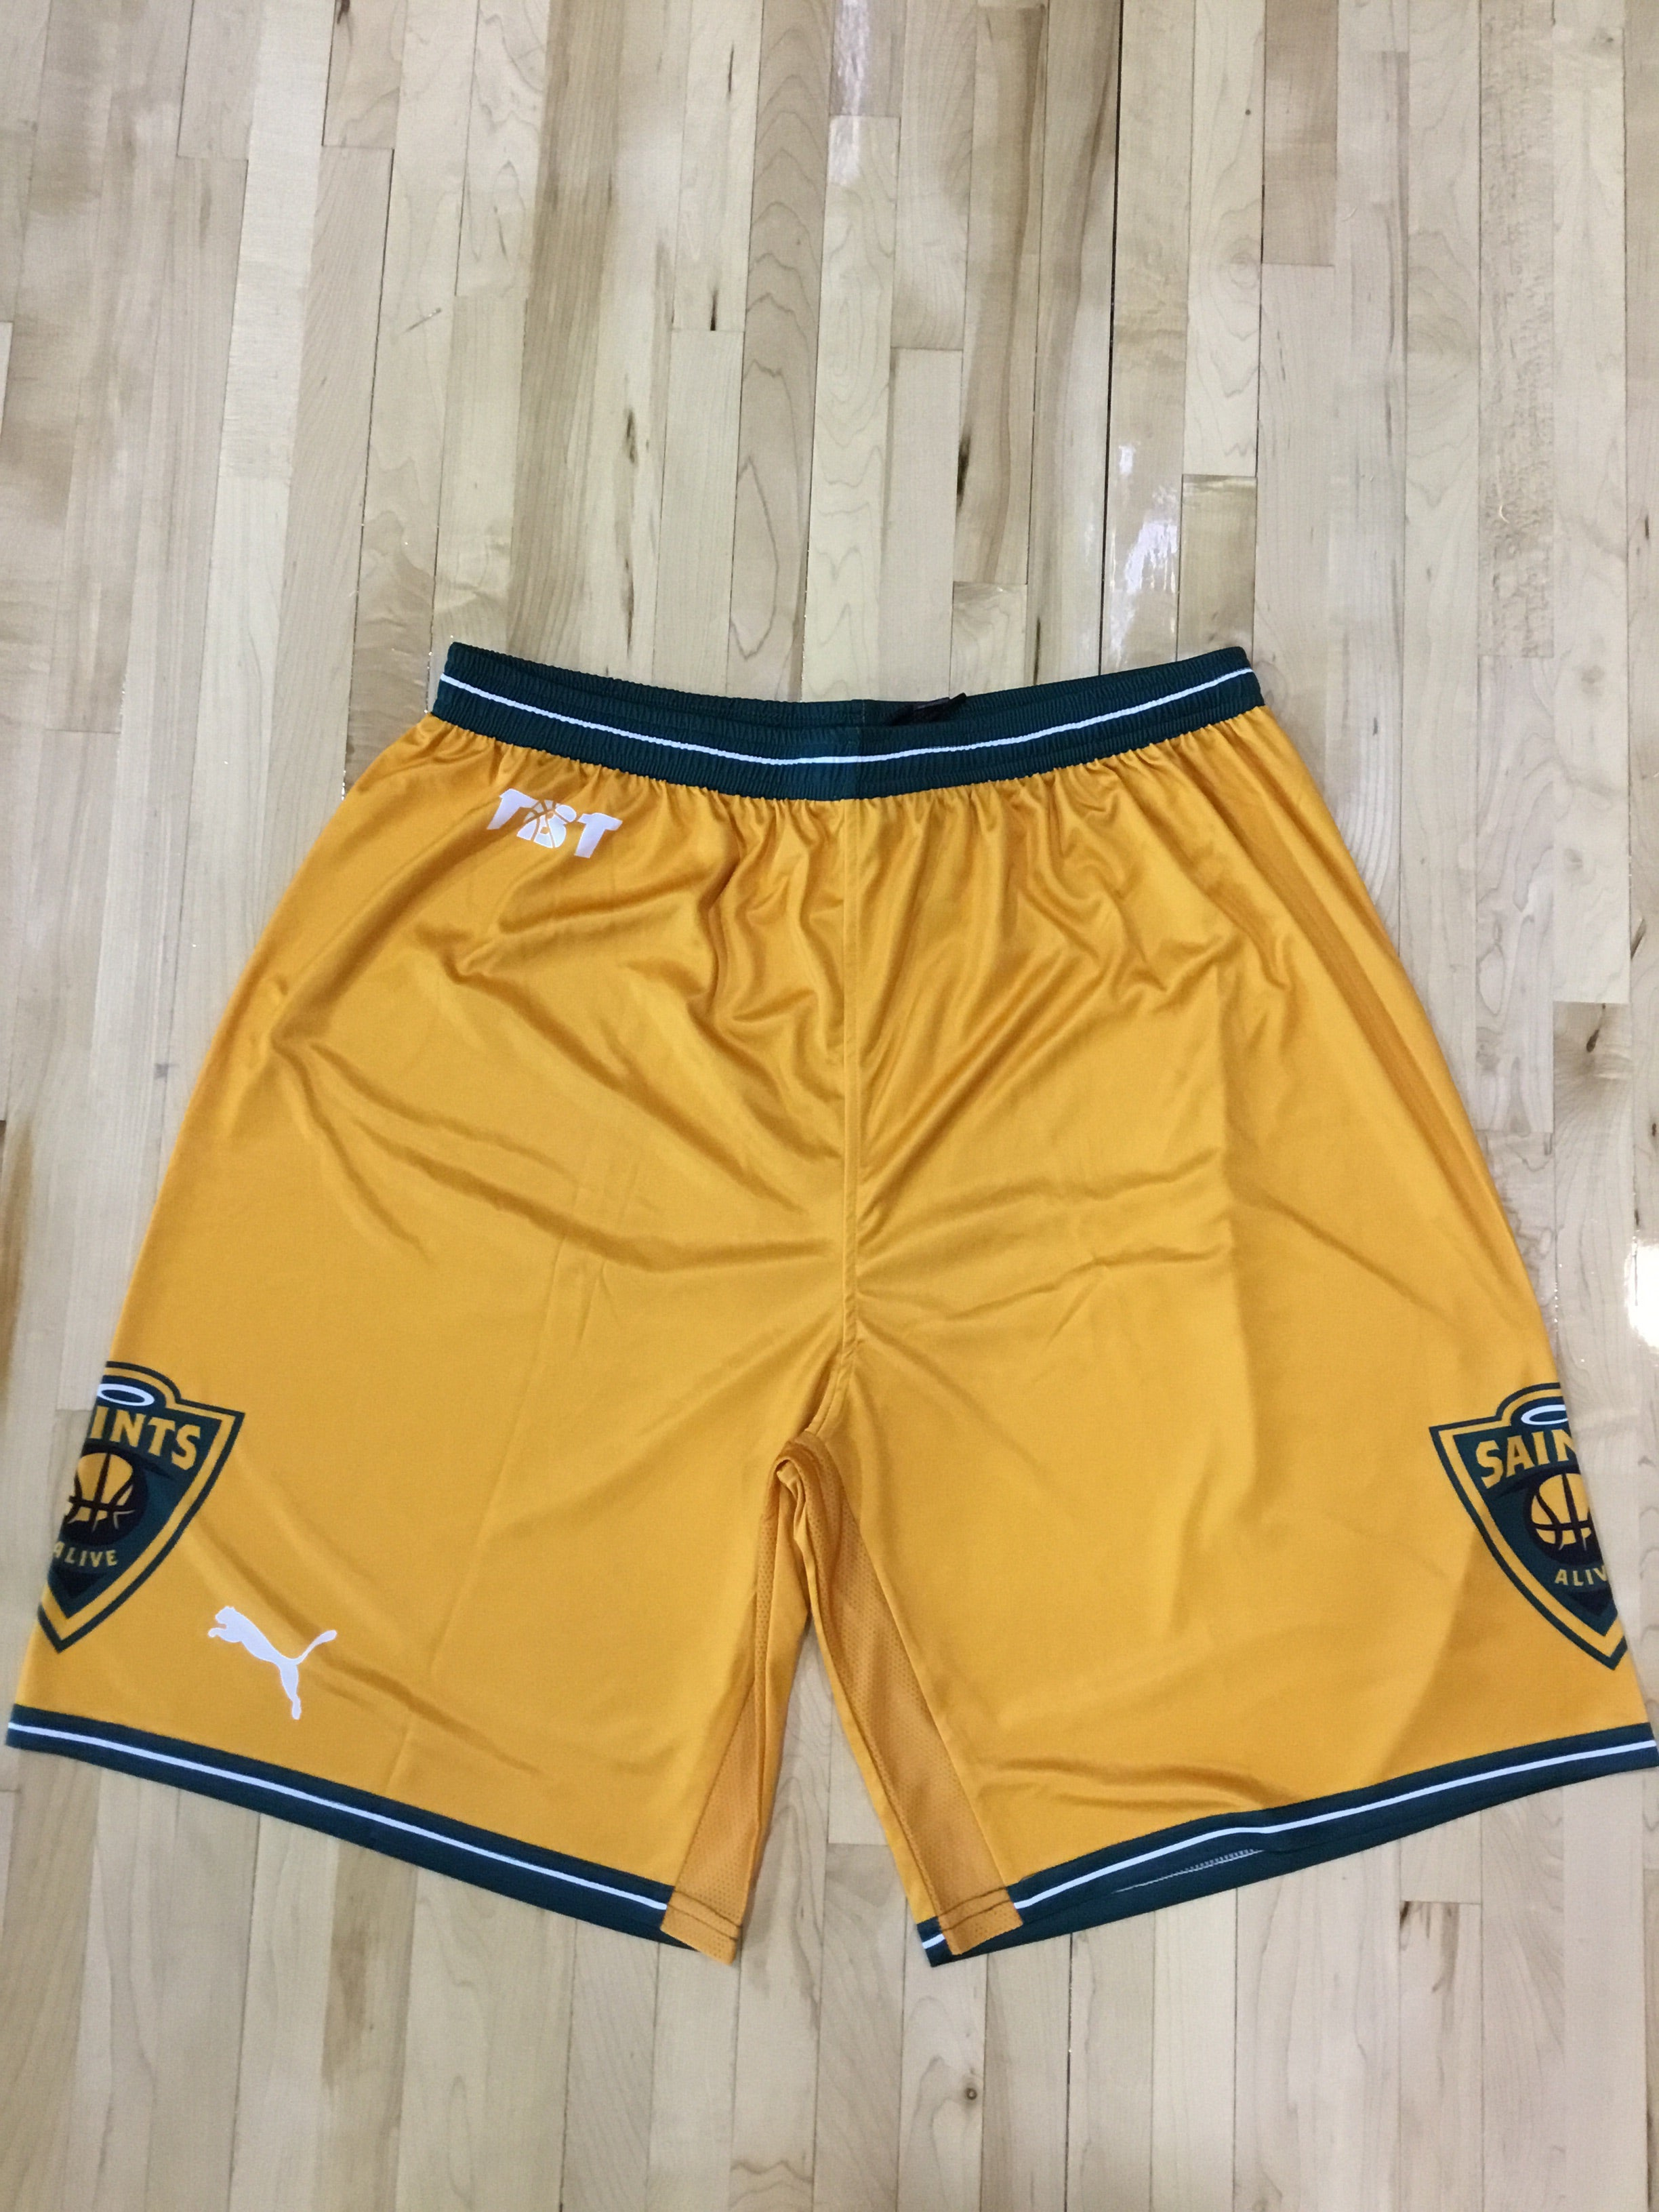 Saints Alive - 2018 Official Team Shorts